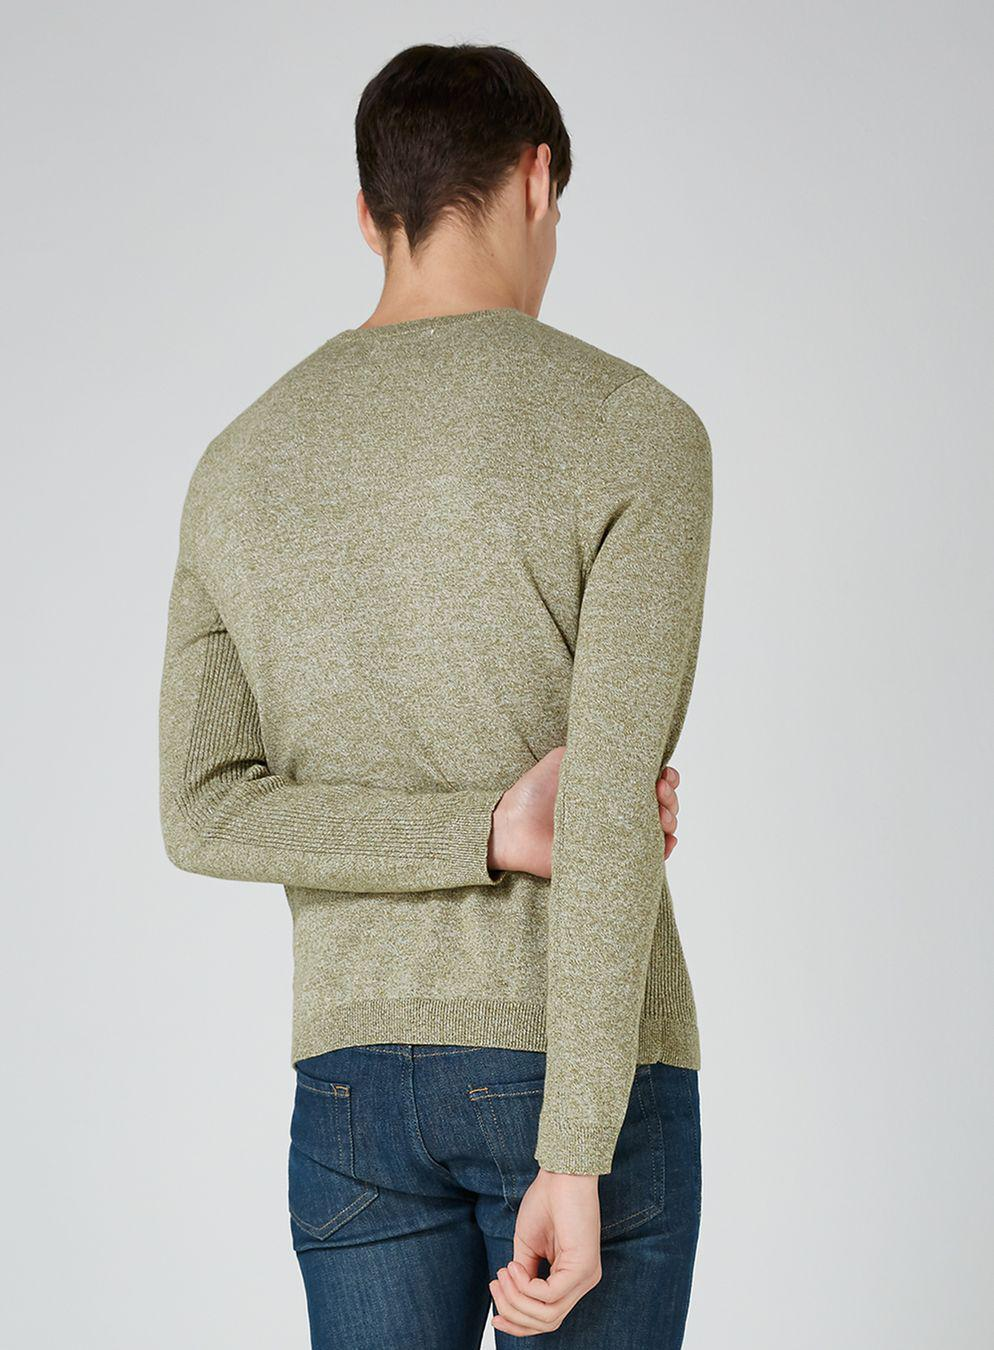 TOPMAN Cotton Khaki And White Twist Jumper in Natural for Men